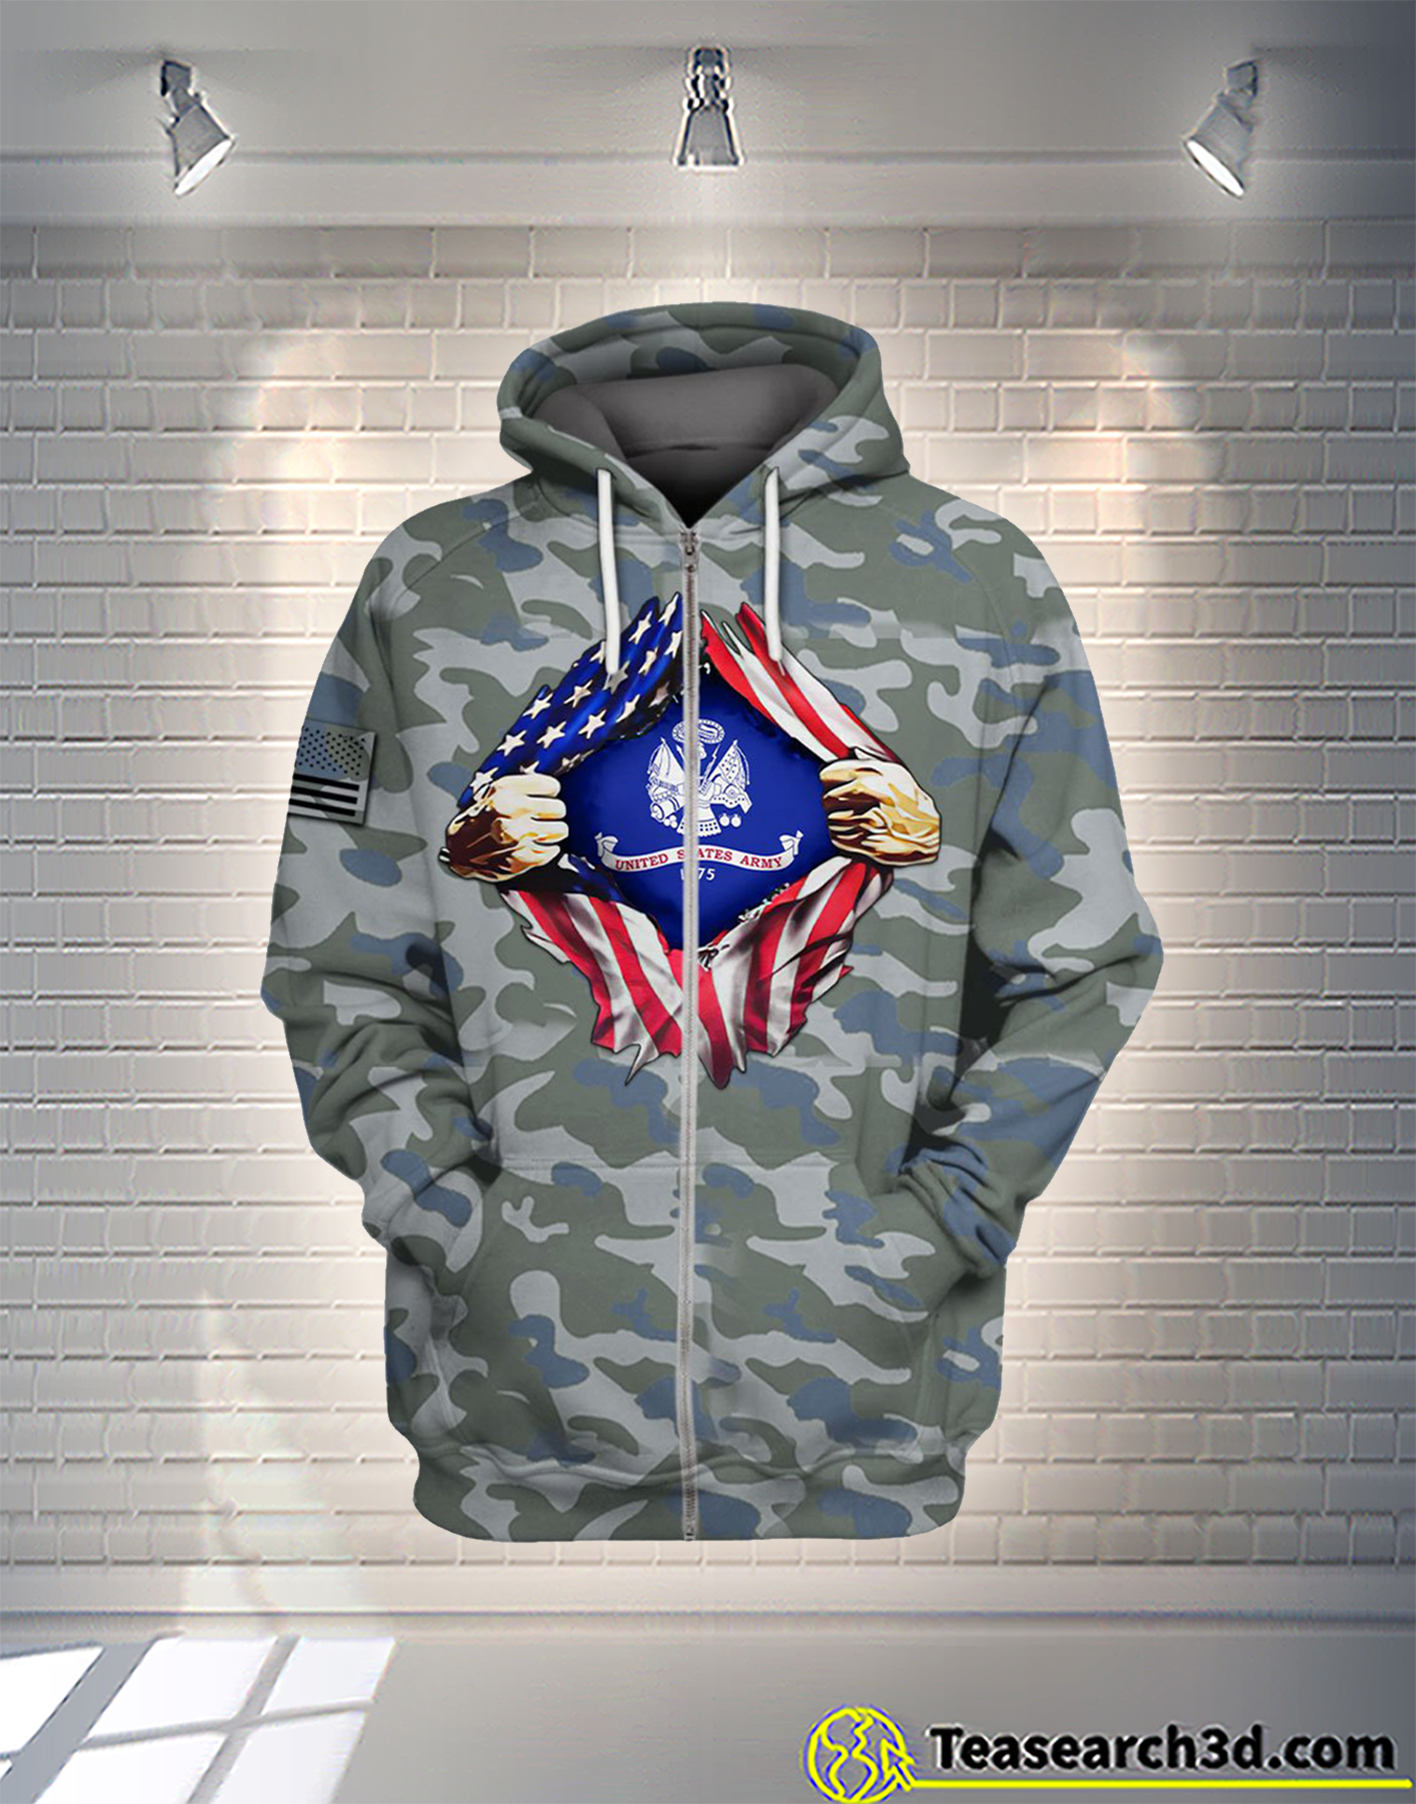 United States Army camo all over printed zip hoodie